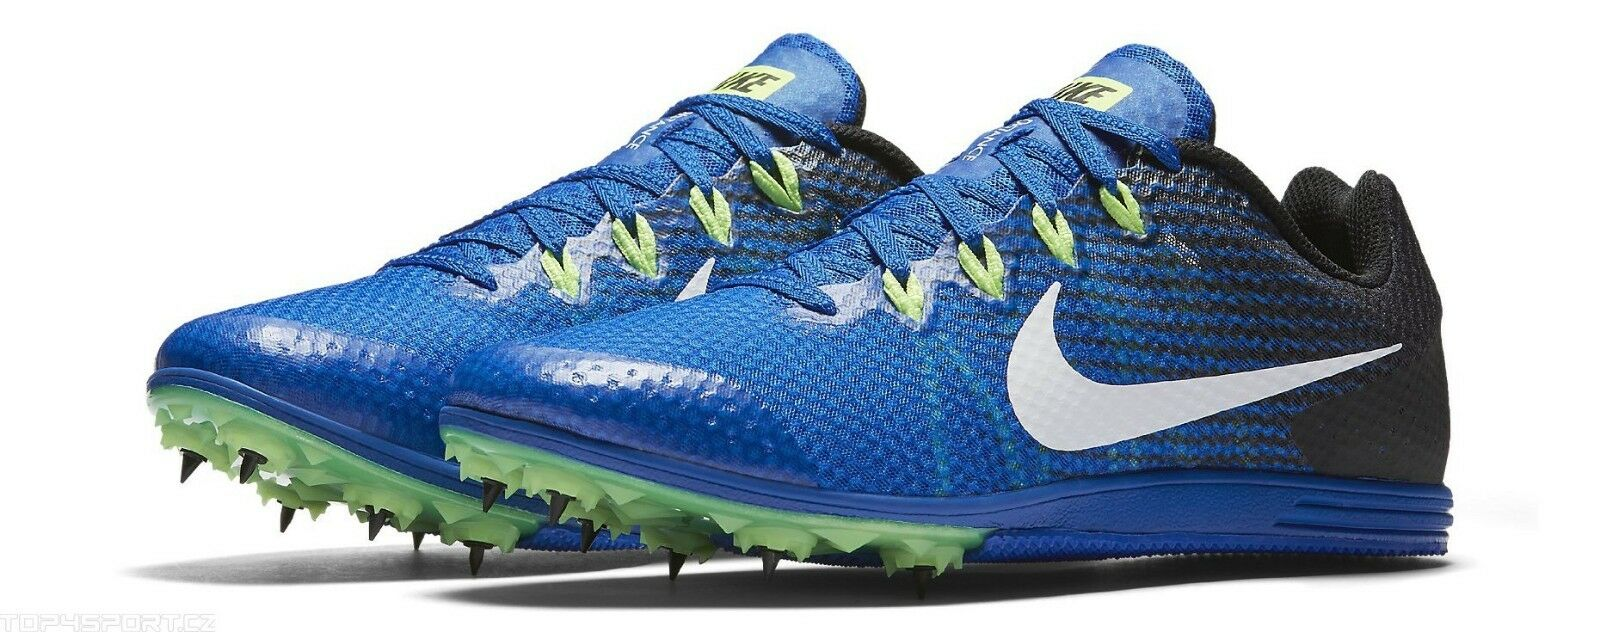 NEW Nike Zoom Rival D 9 Men's Spikes Track Field Racing 806556 413 Blue Price reduction Seasonal price cuts, discount benefits